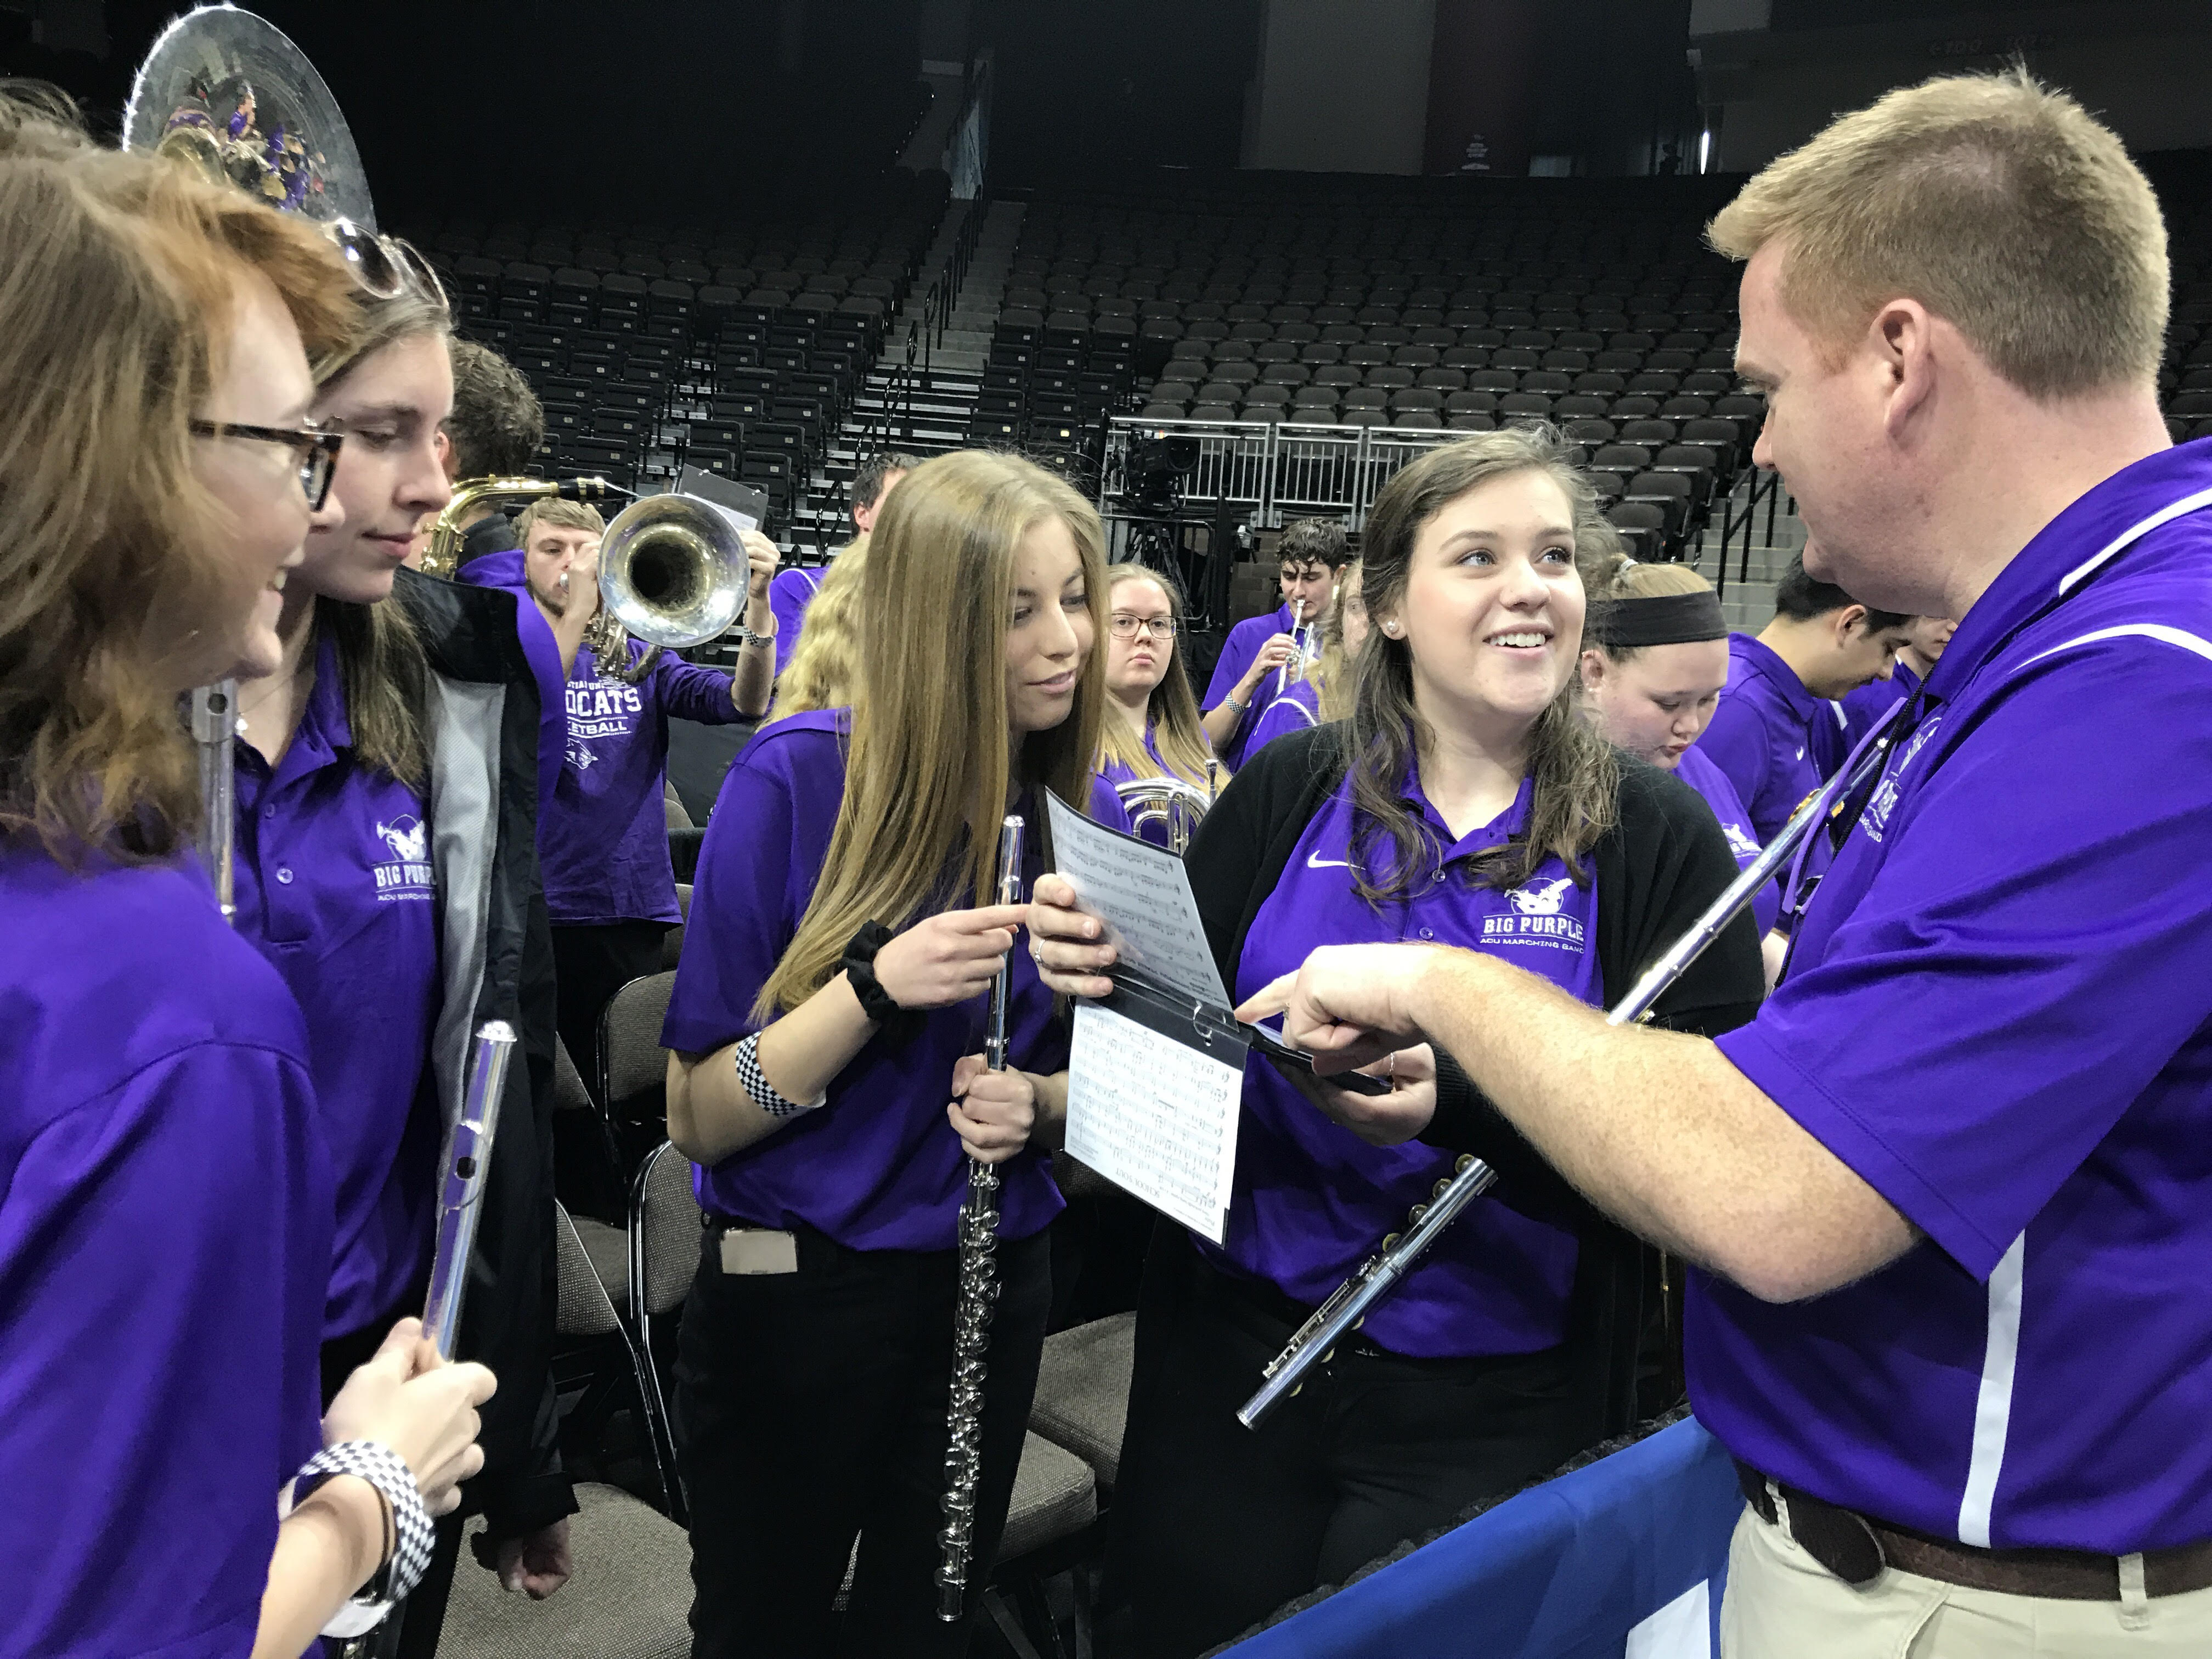 At a practice session in the arena on Wednesday in Jacksonville, (from left) Emily Tiras, Faith Parsons, Bailey McCall and Alli Mae Bulkley discuss music selections for the upcoming game with Dr. Brandon Houghtalen (right).